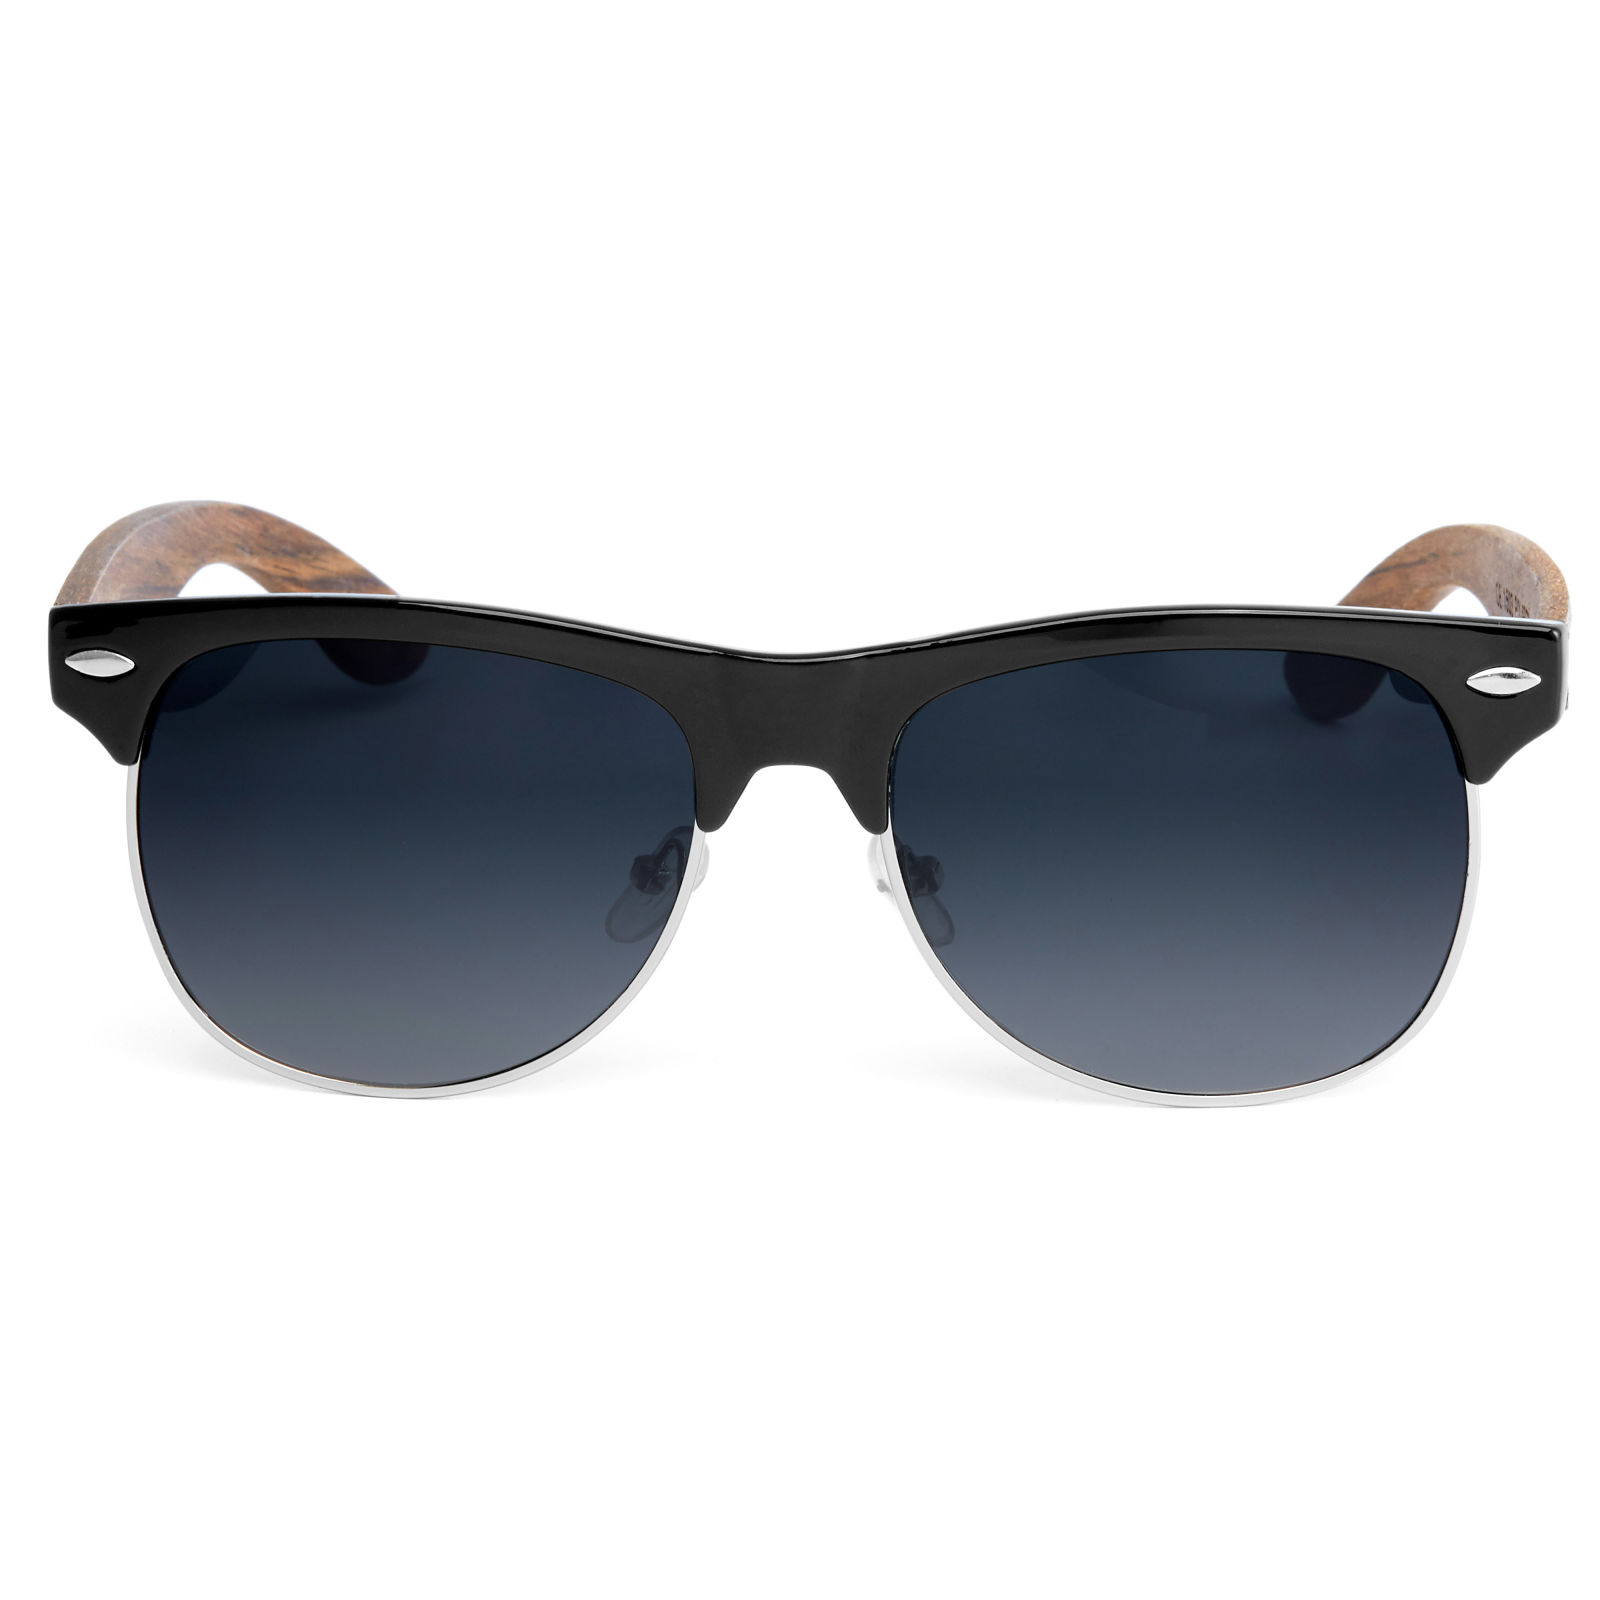 Polarized Γυαλιά Ηλίου Browline Ebony Smoke  d5a80f281b5